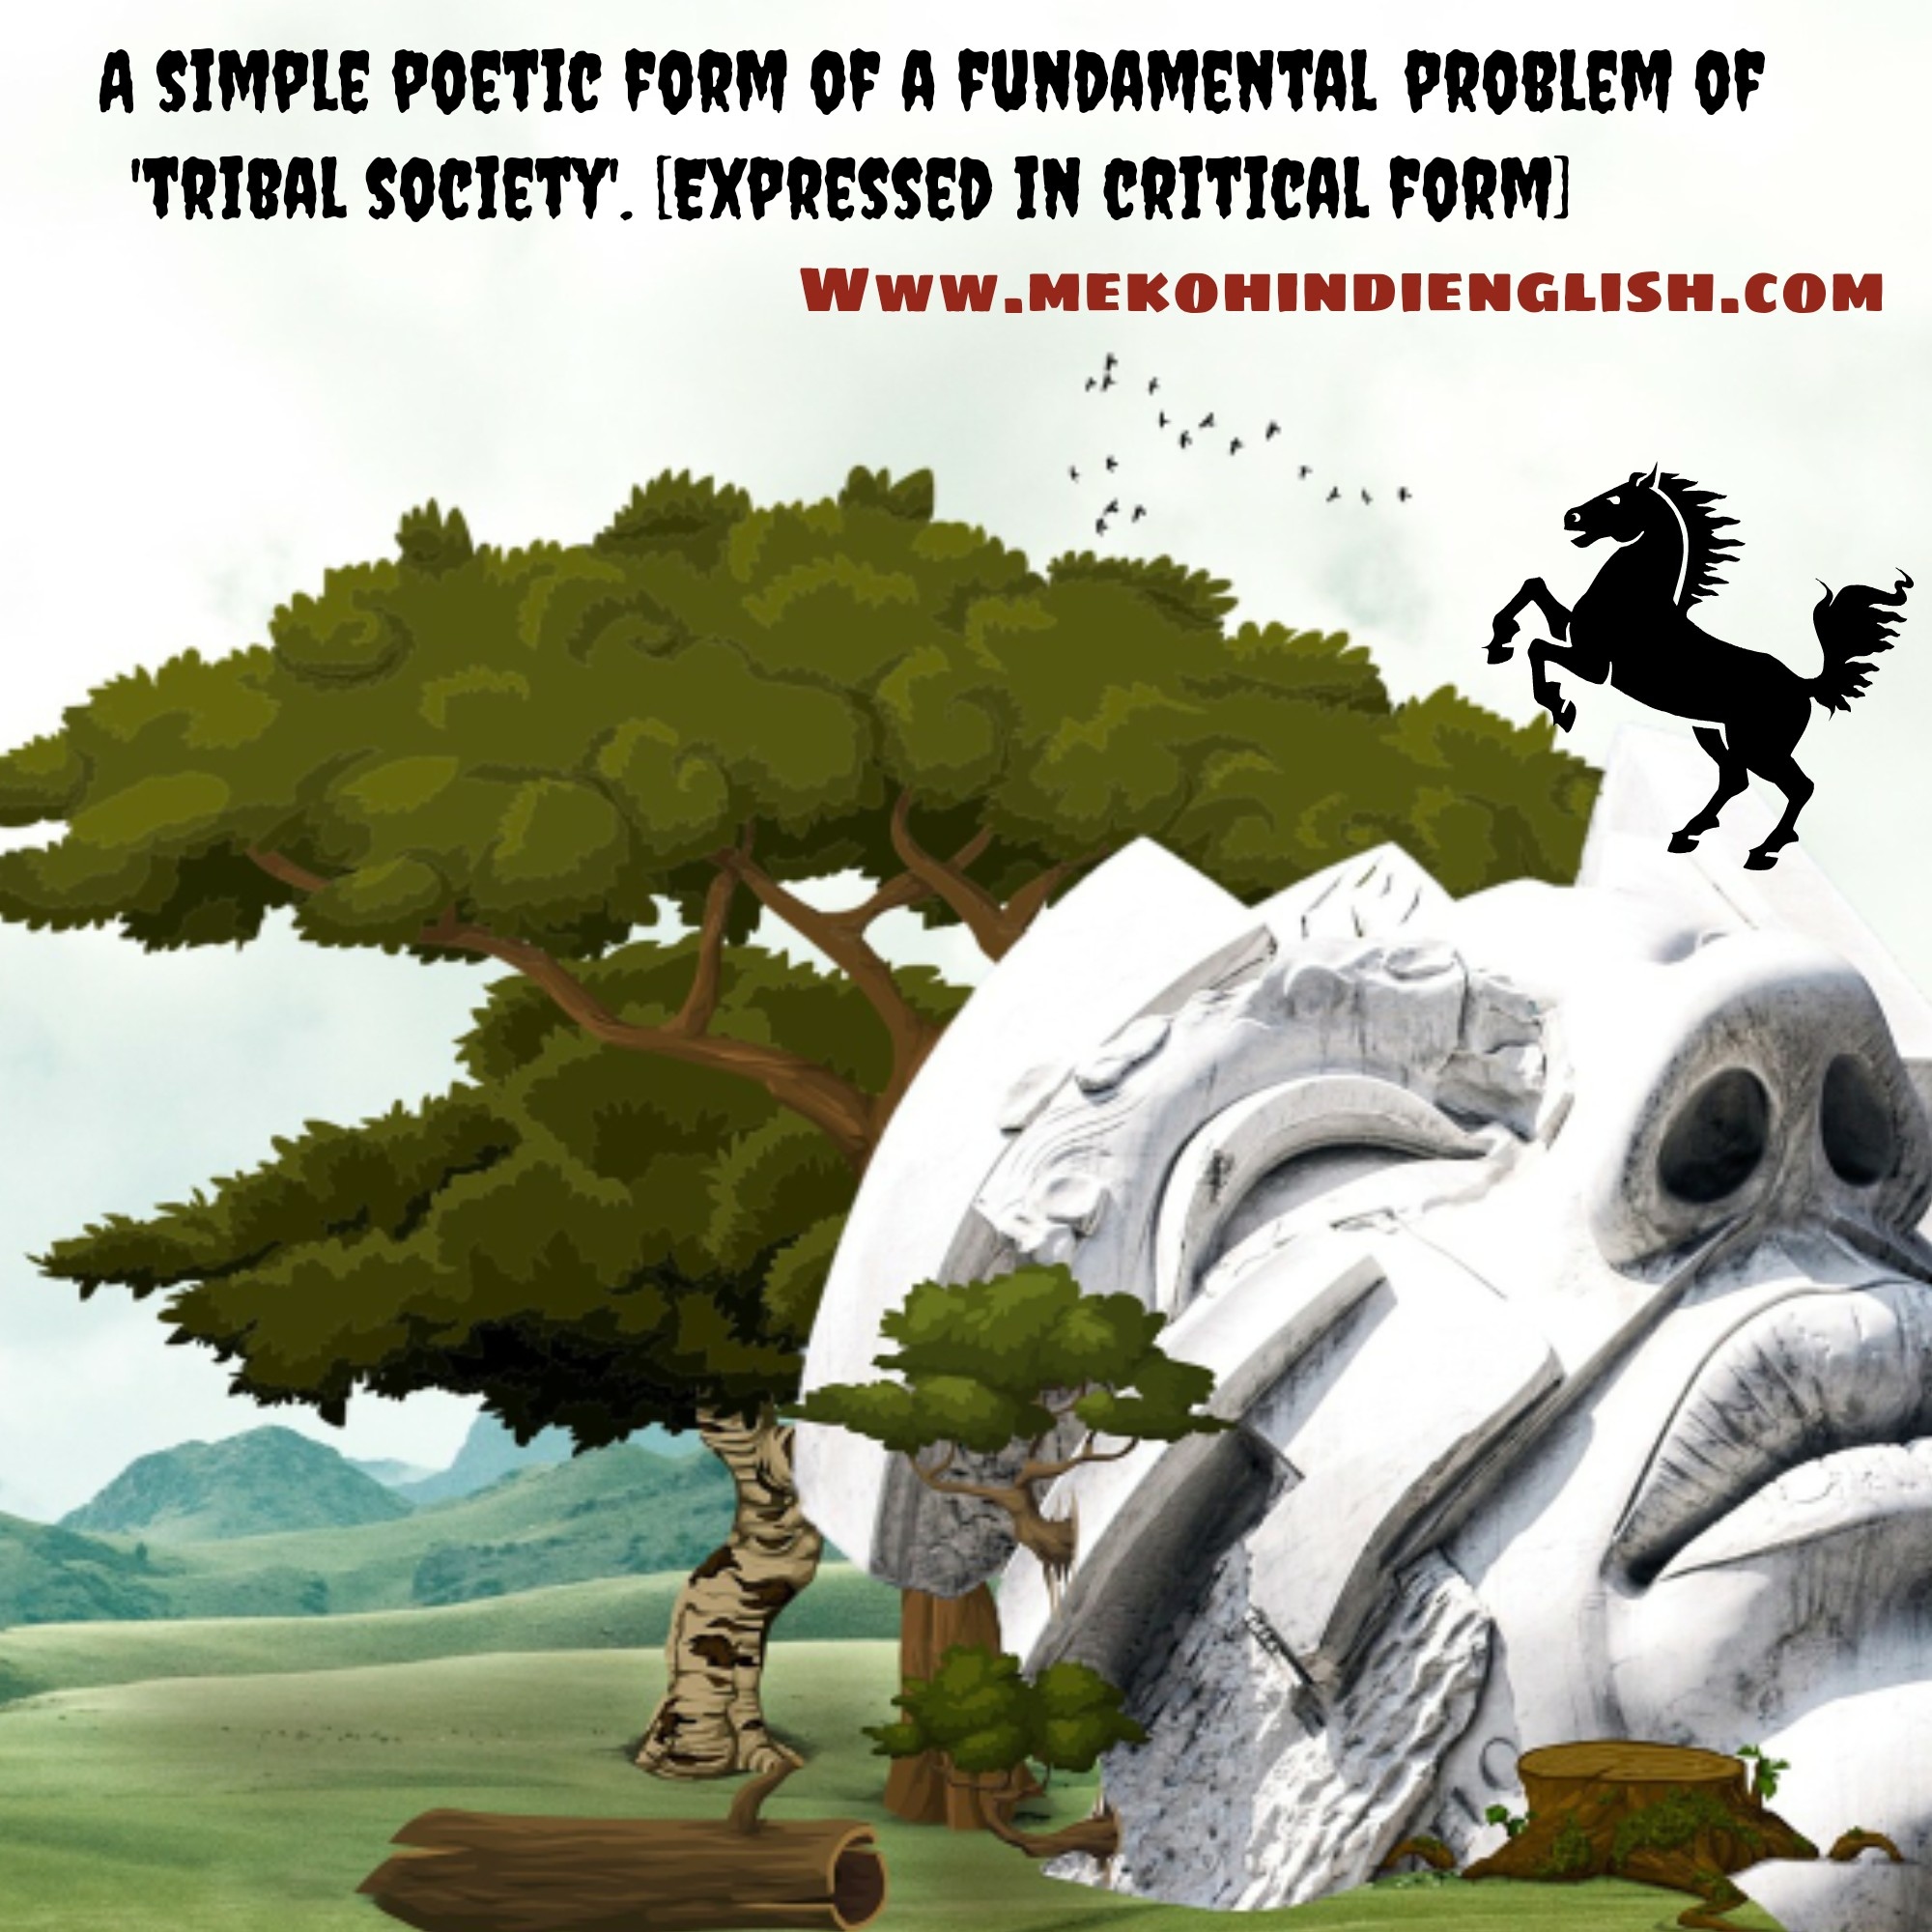 http://www.mekohindienglish.com/2020/06/a-simple-poetic-form-of-fundamental.html